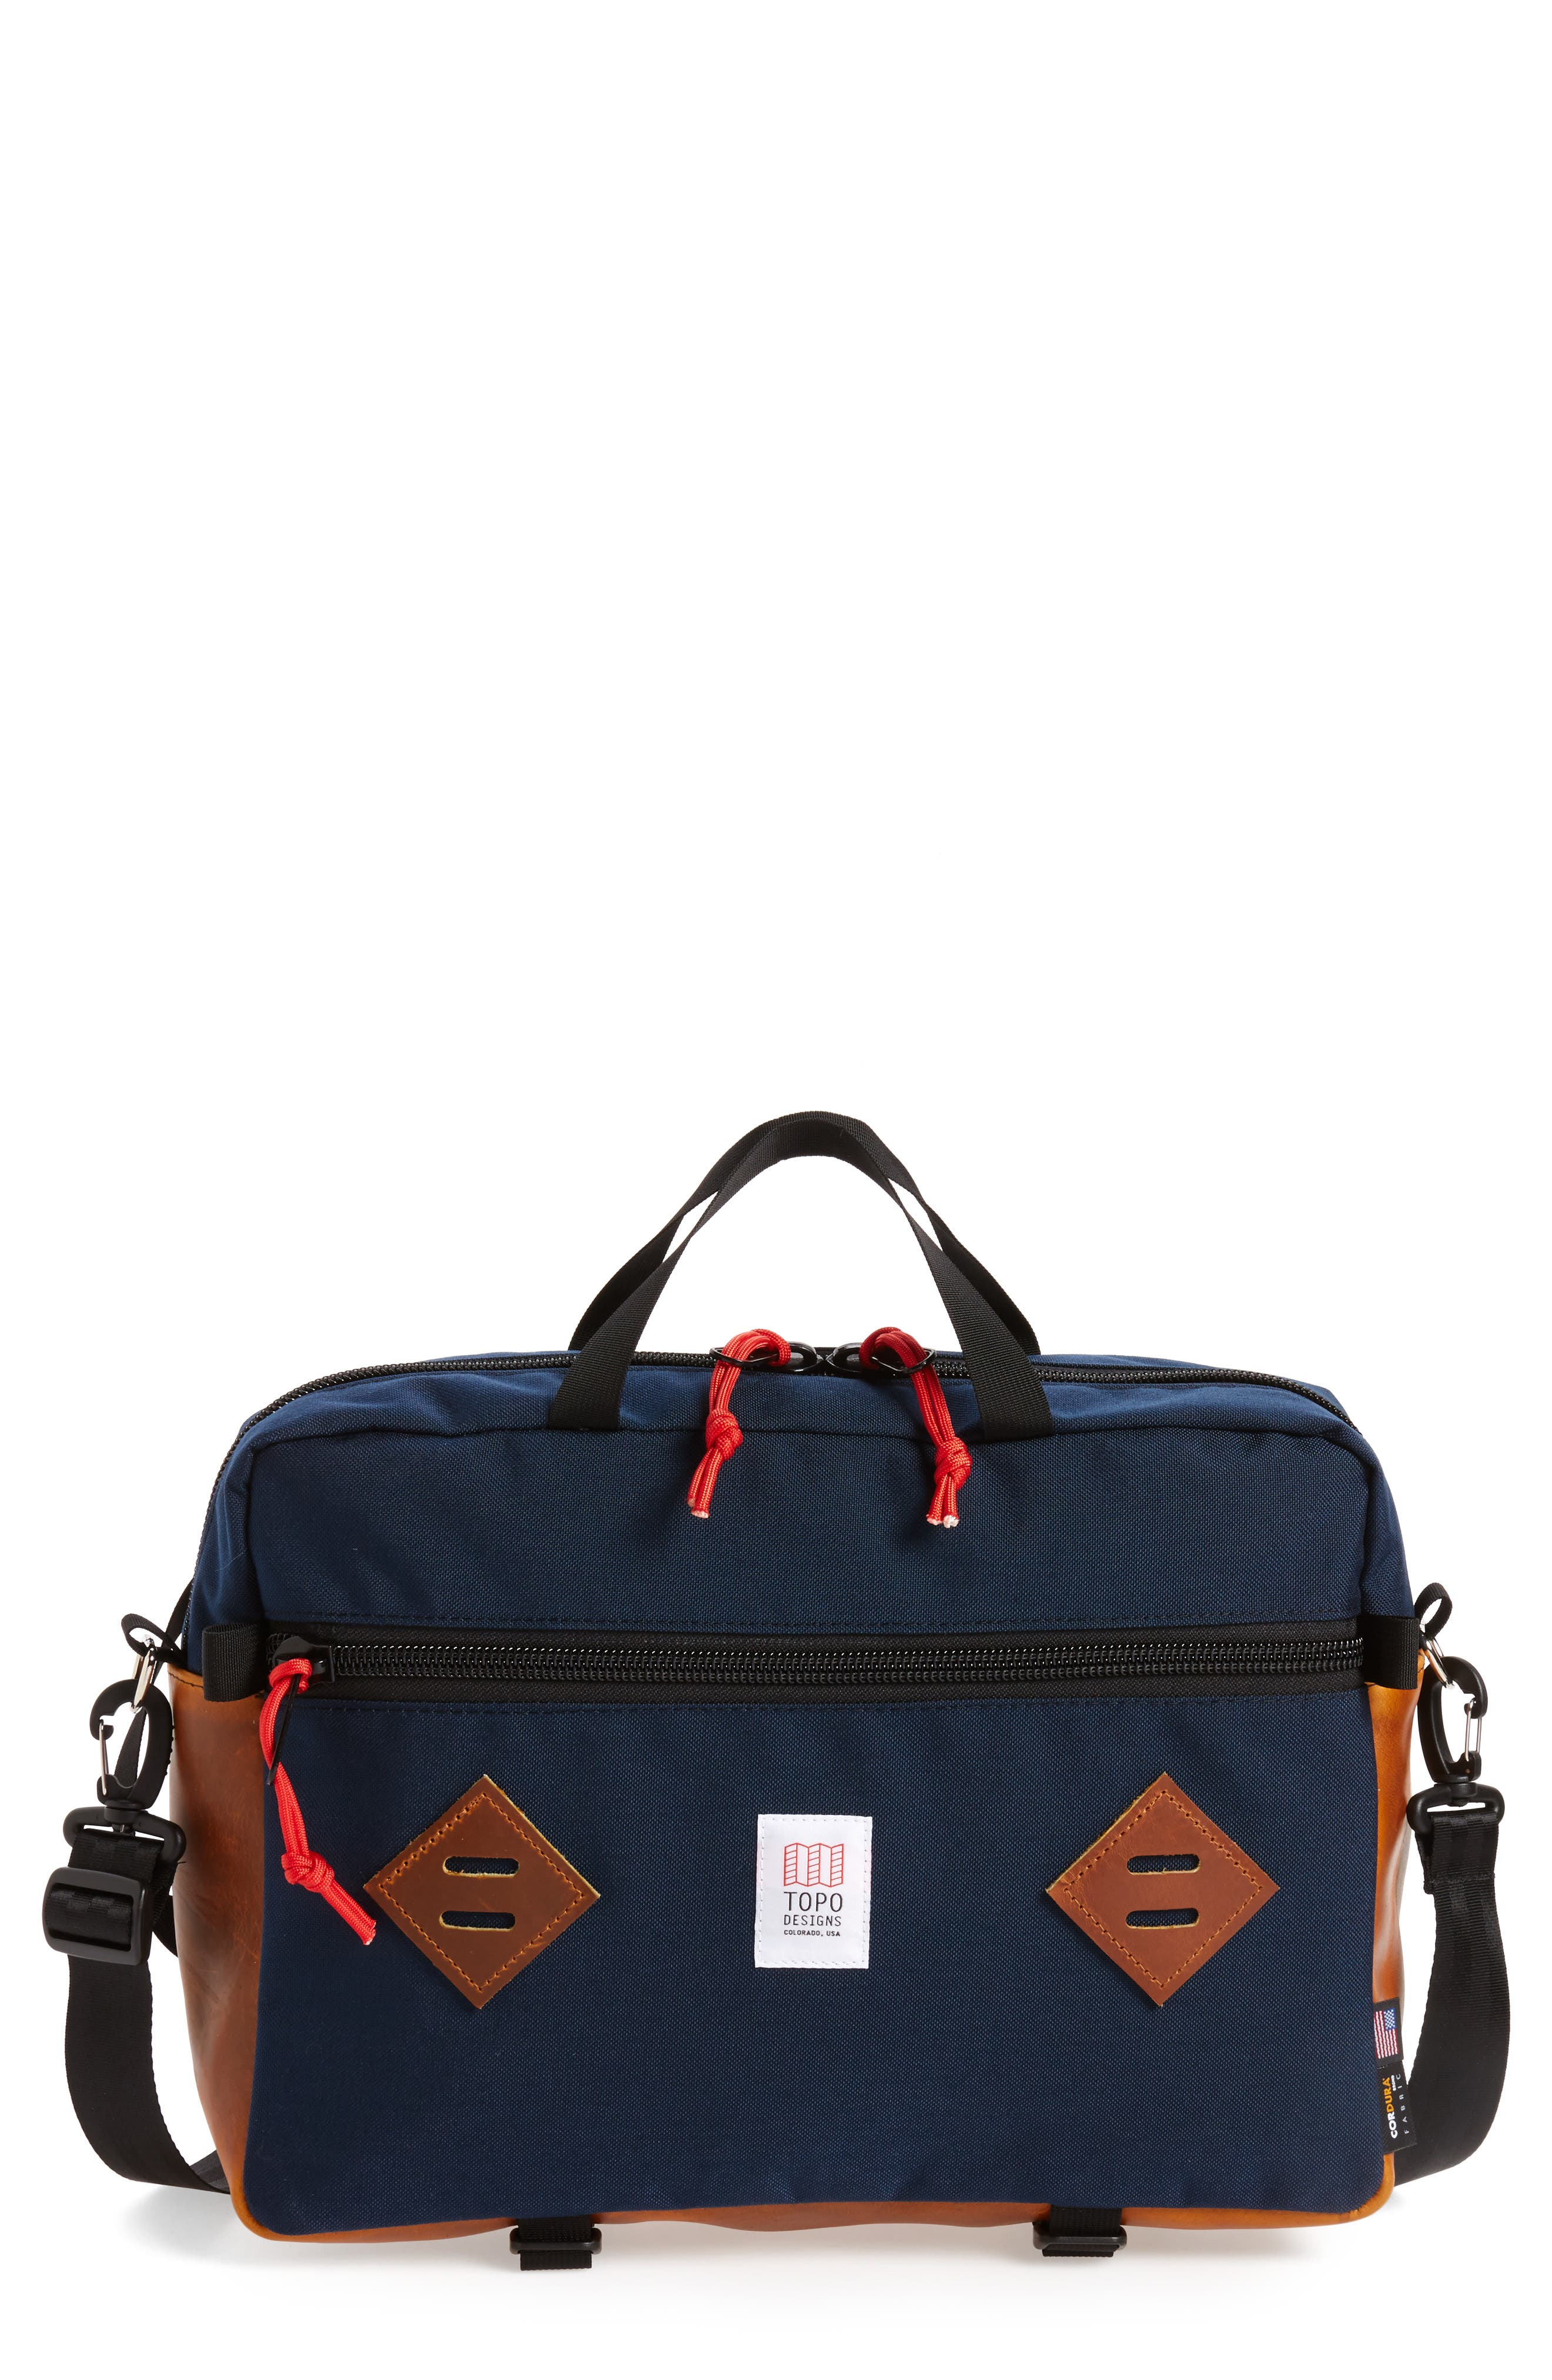 Topo Designs Mountain Convertible Briefcase